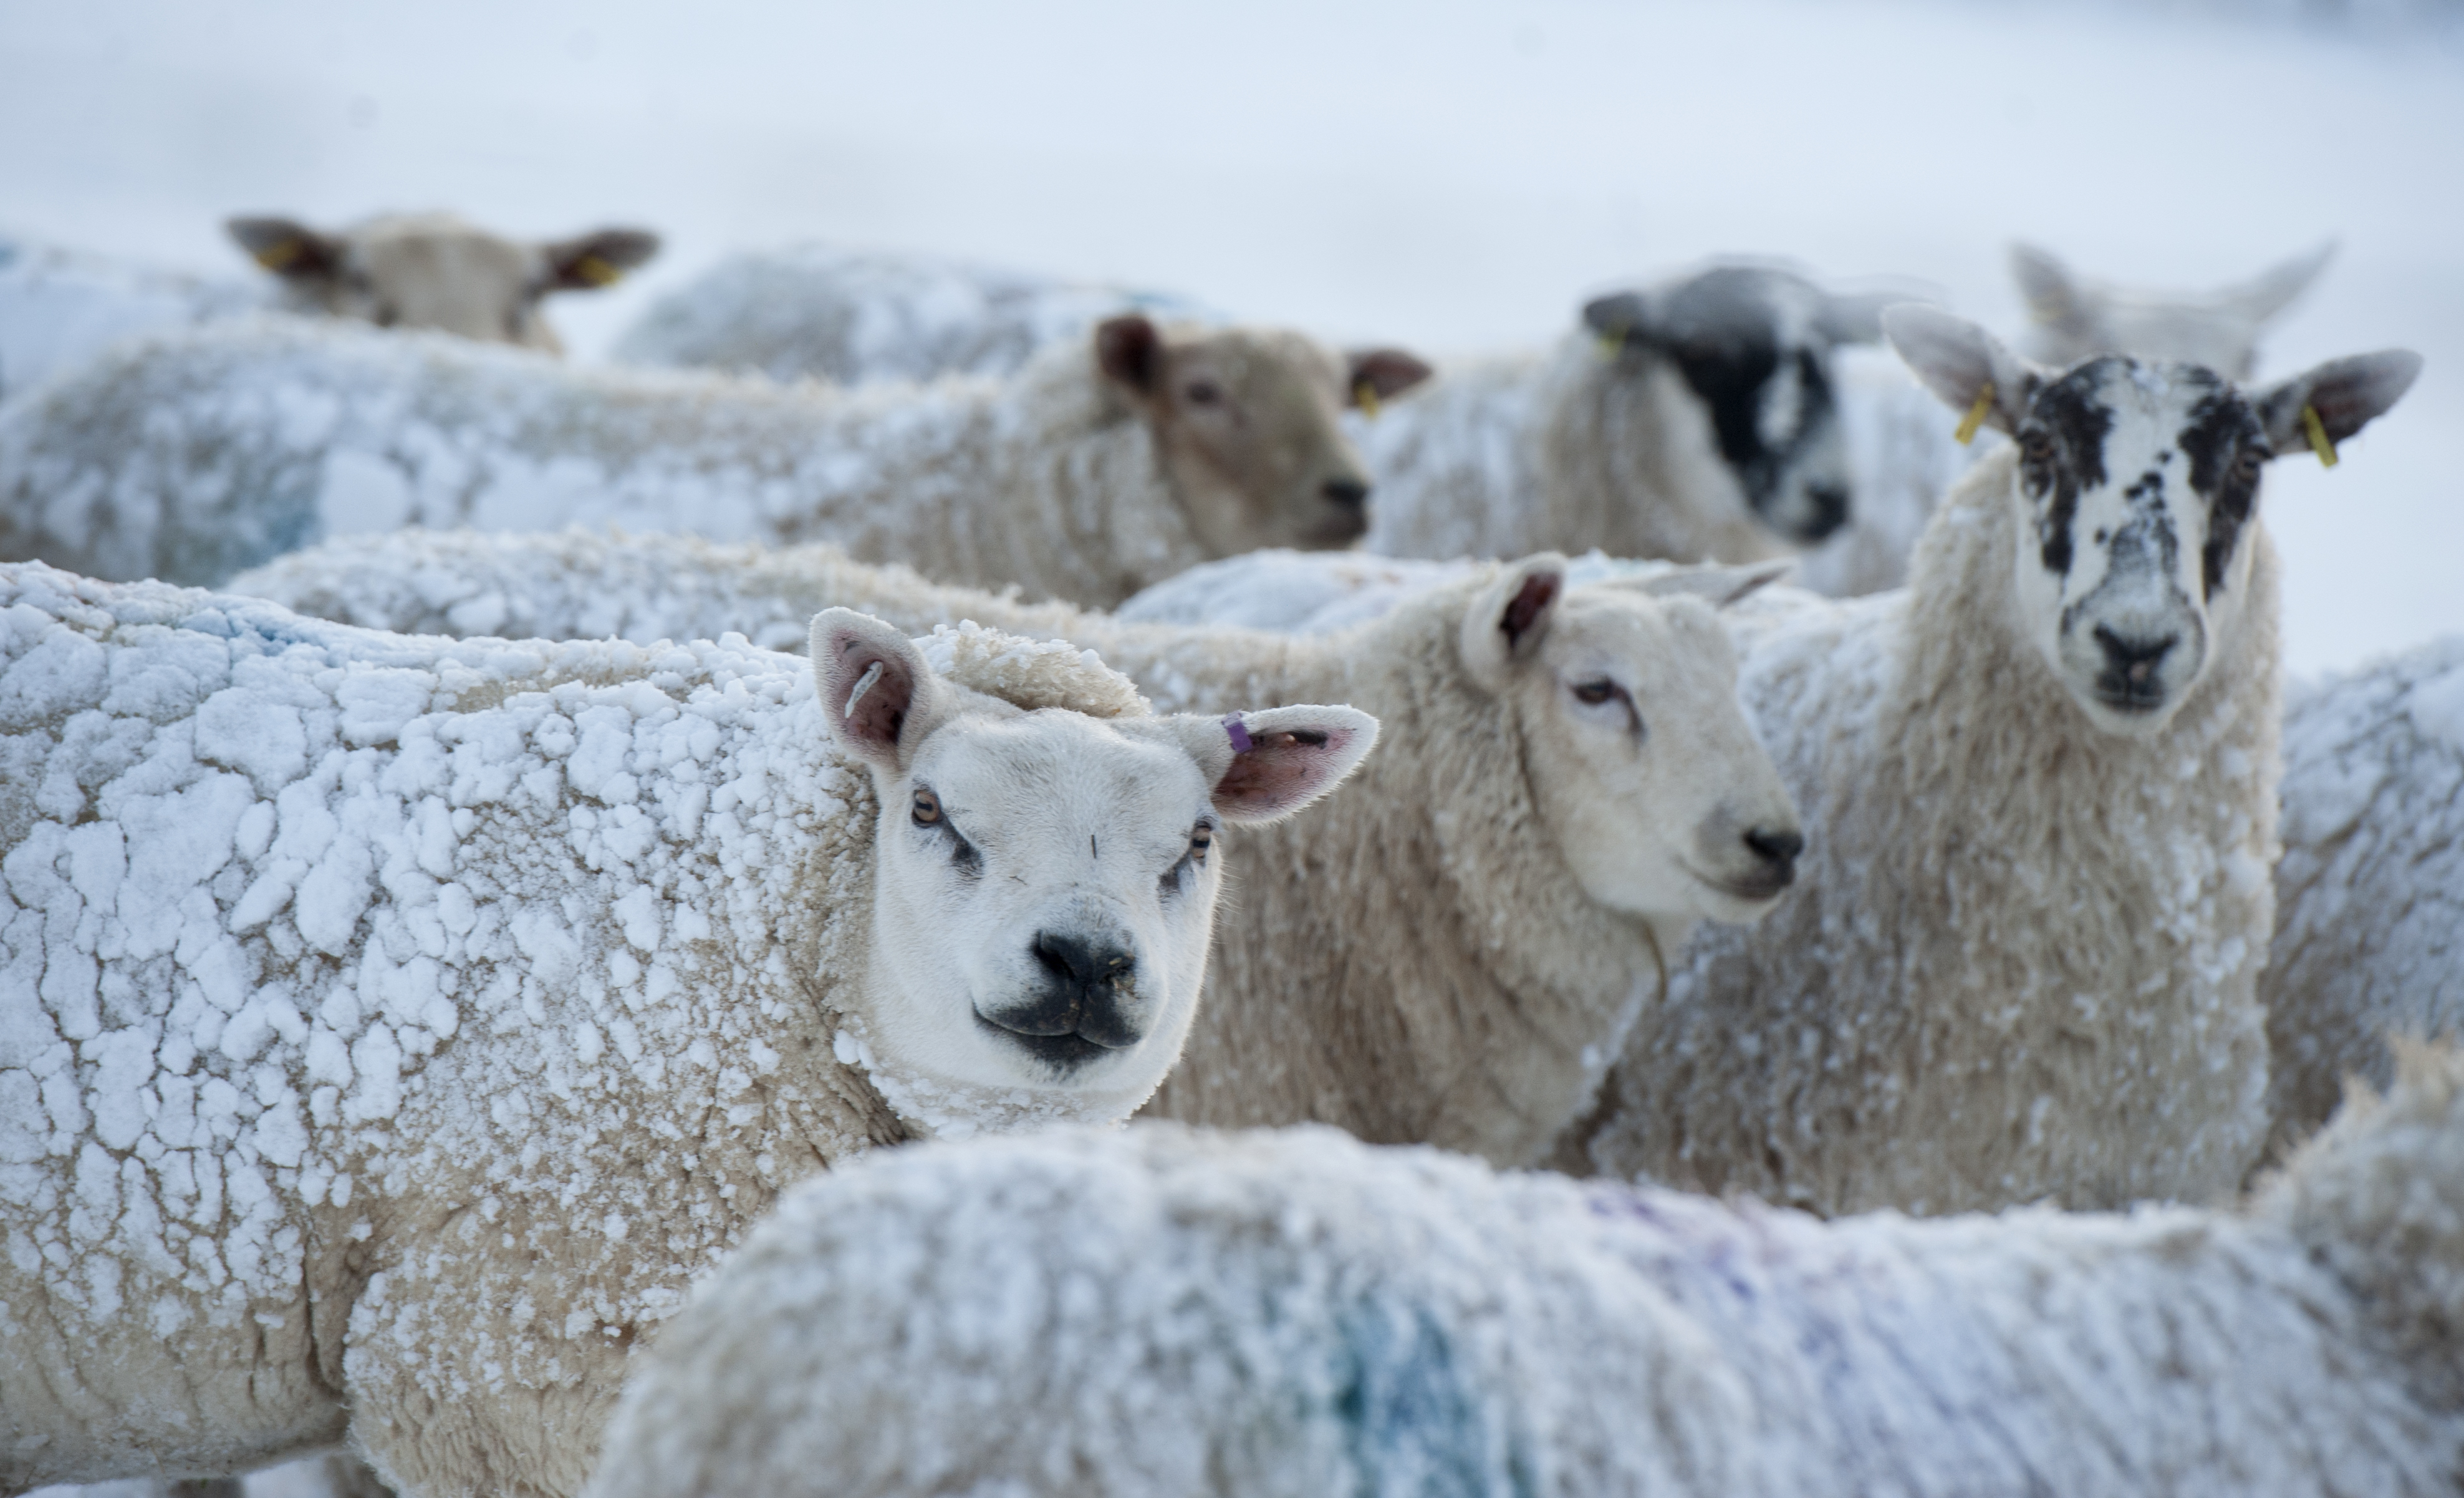 The contagious disease is estimated to cost the Scottish sheep industry around £9 million per annum.